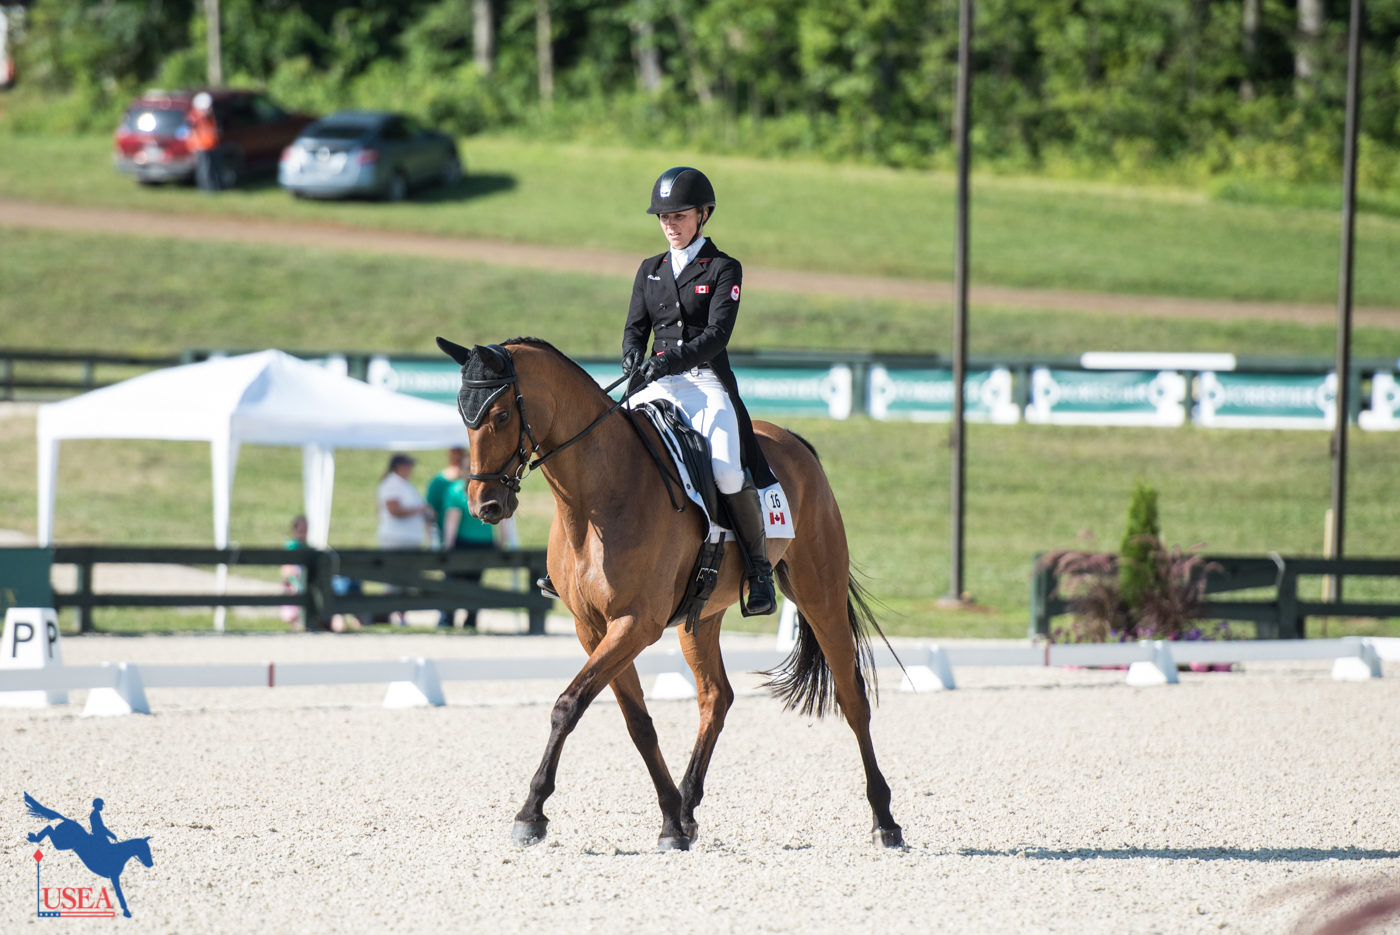 19th - Jessica Phoenix and Abbey GS - 55.7